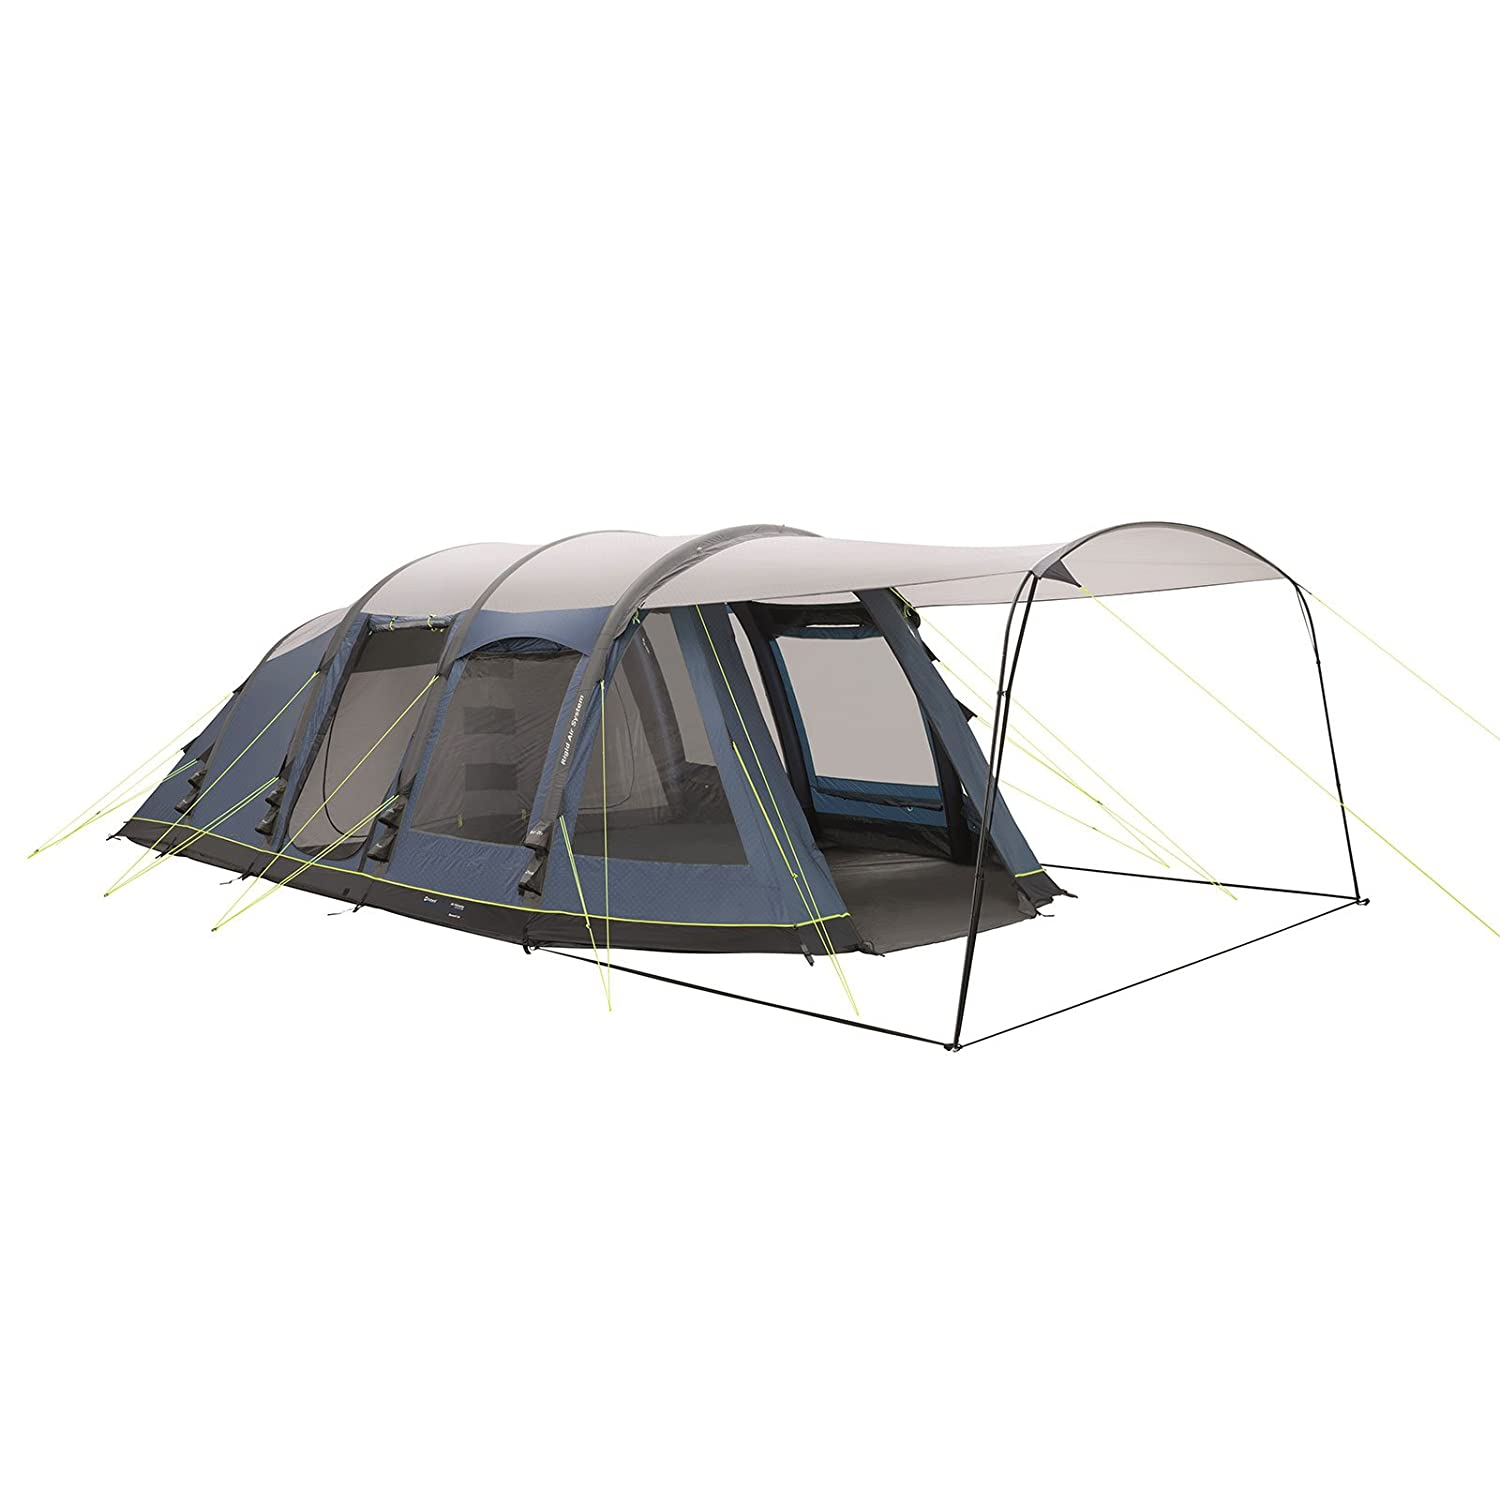 Outwell Outwell Outwell Campingzelt Roswell 6A Zelt 5cca7e